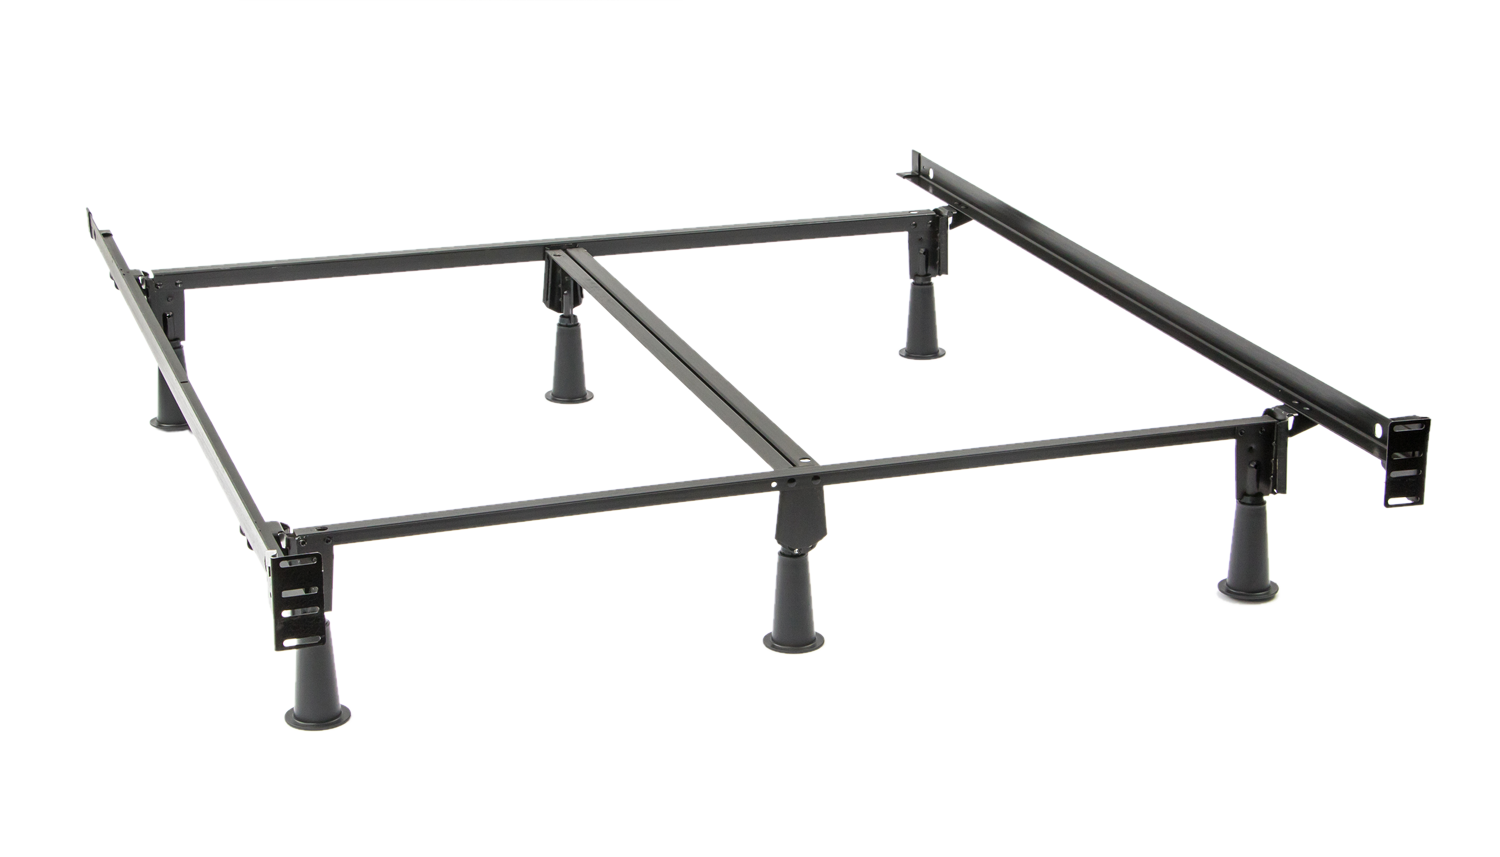 Queen Instamatic Bed Frame With Leg Extender Kit Tall Bed Frame